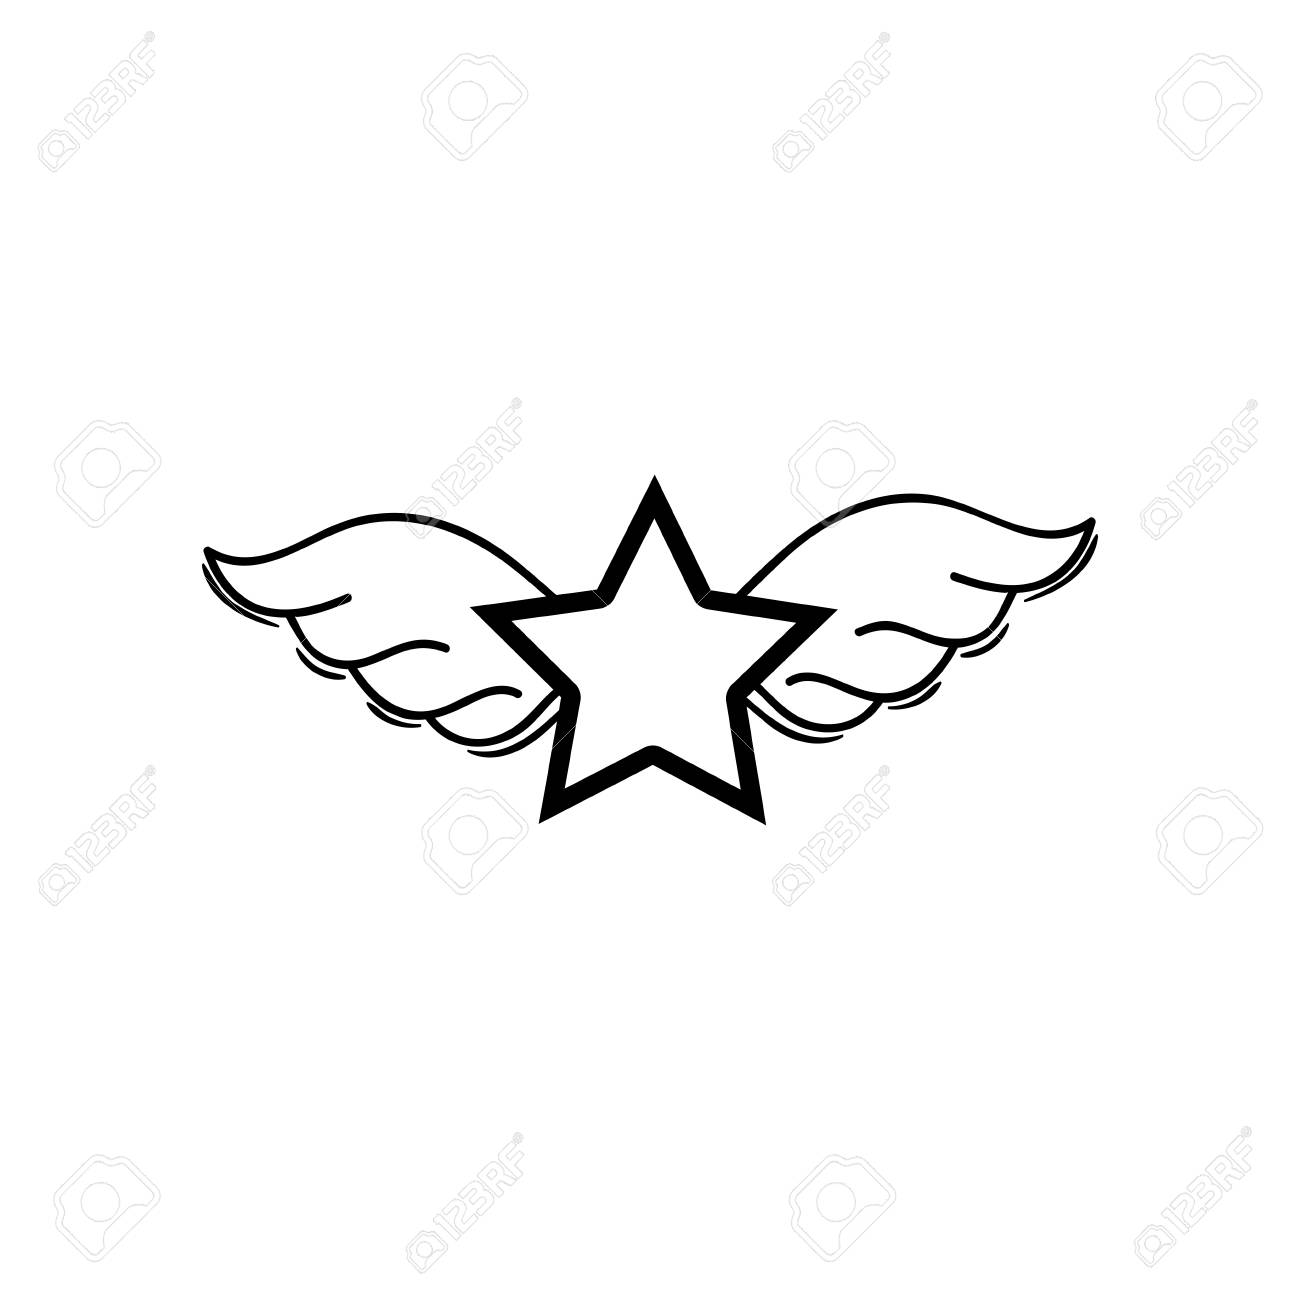 Figure Star With Wings Rock Symbol Art Vector Illustration Royalty